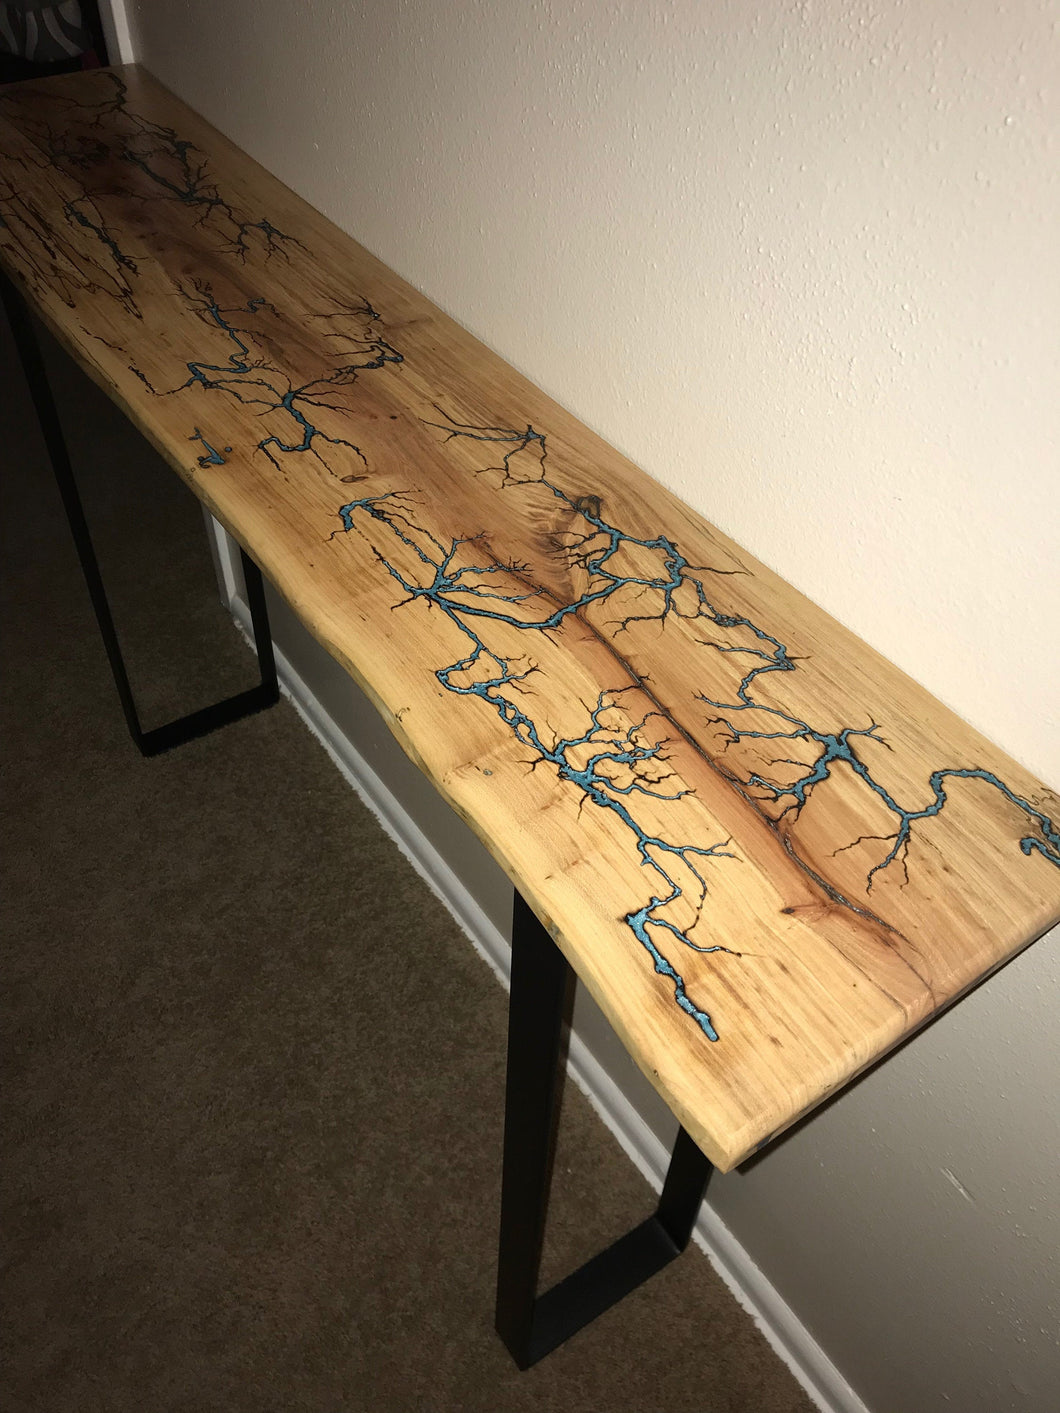 Lichtenberg Figure Table With Colored Epoxy Inlays